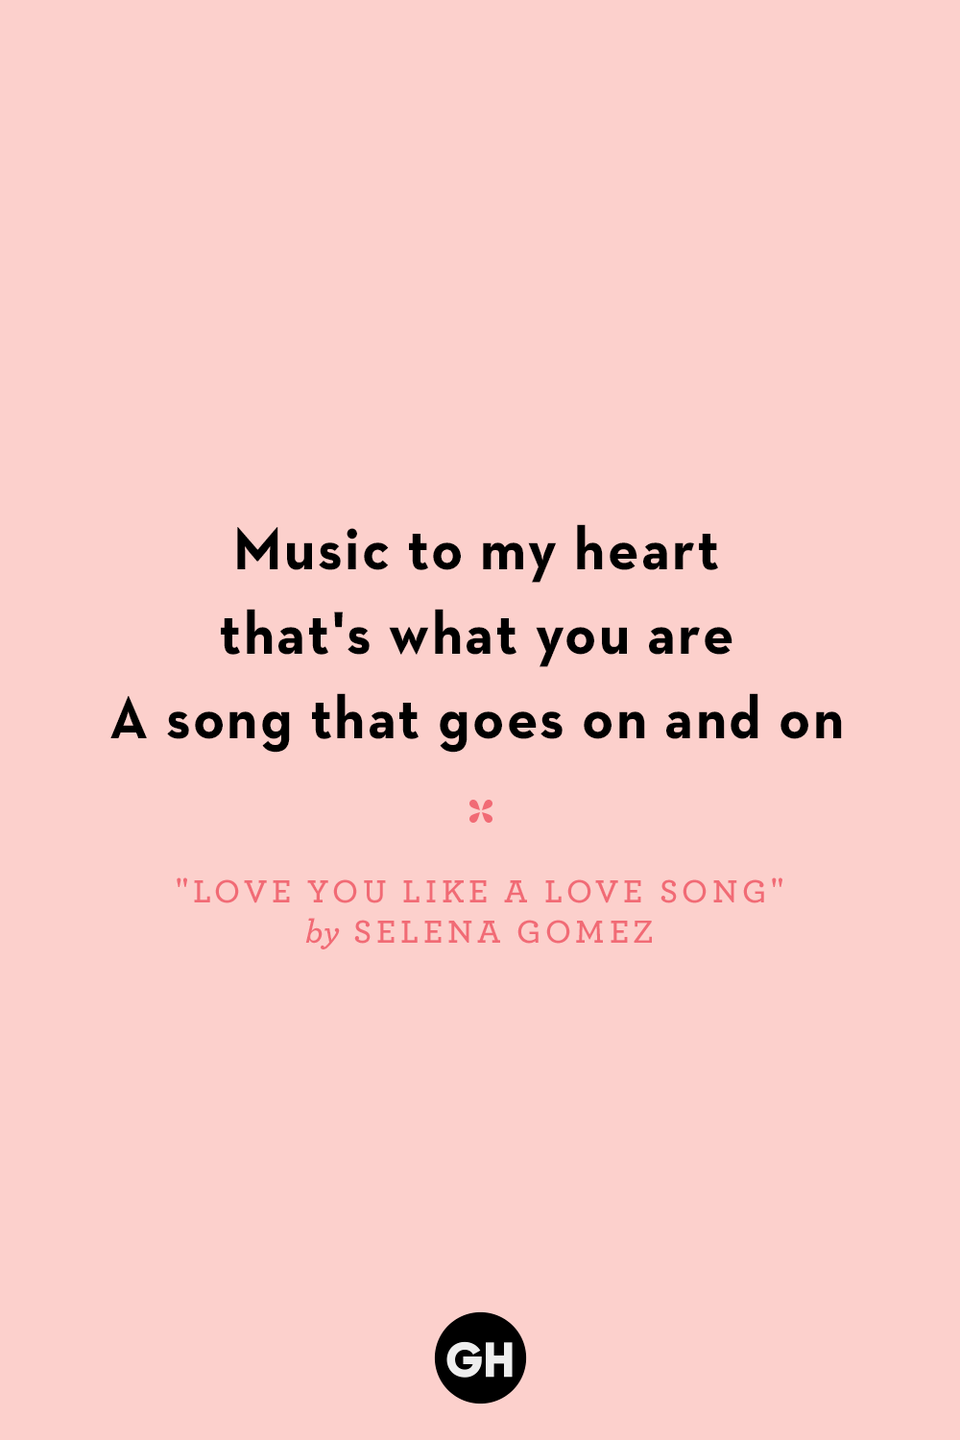 <p>Music to my heart that's what you are</p><p>A song that goes on and on</p>